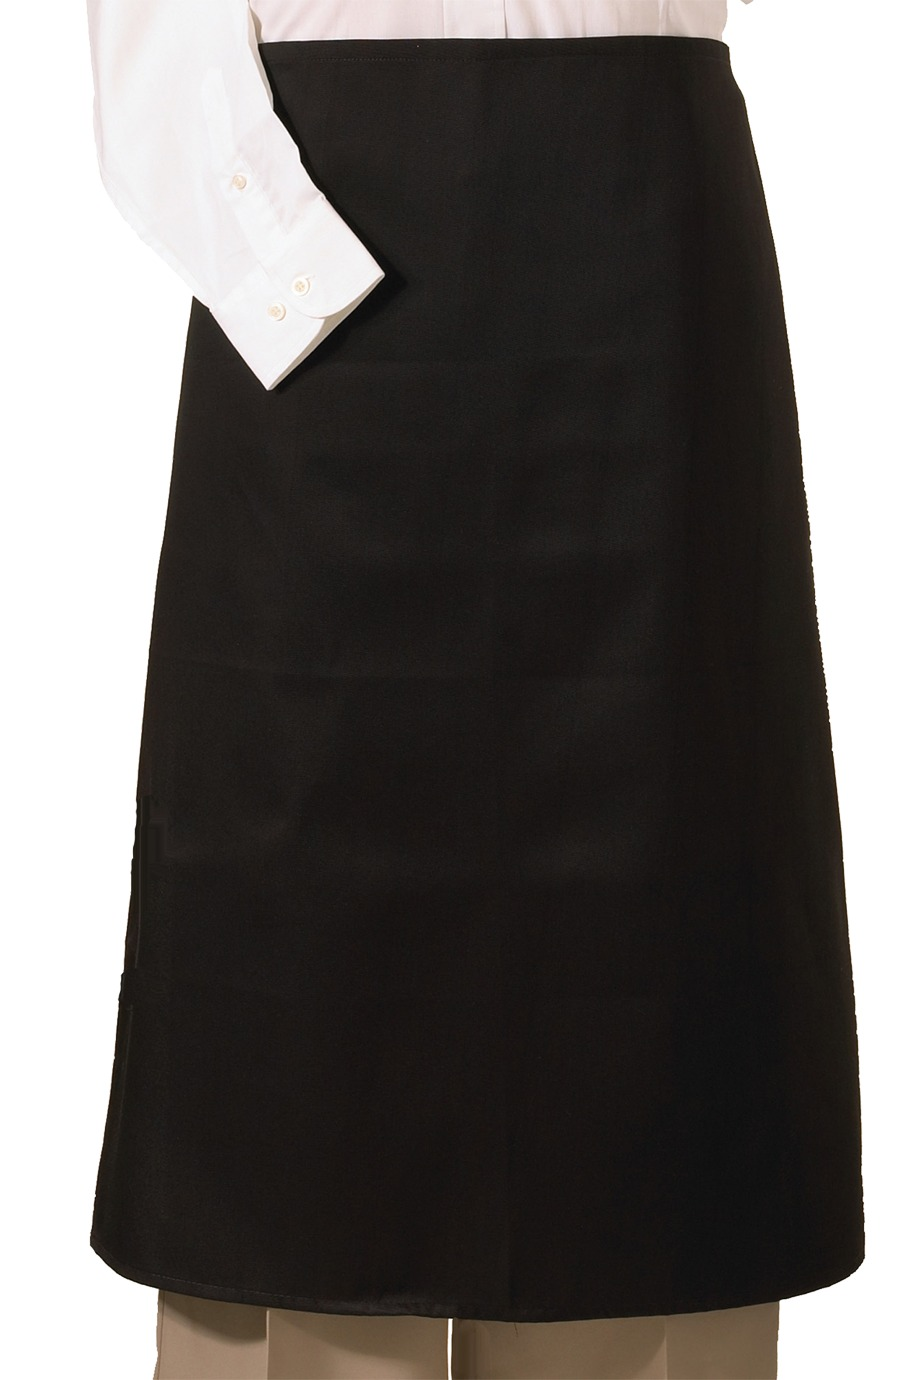 Edwards Garment 9030 - Bar Apron